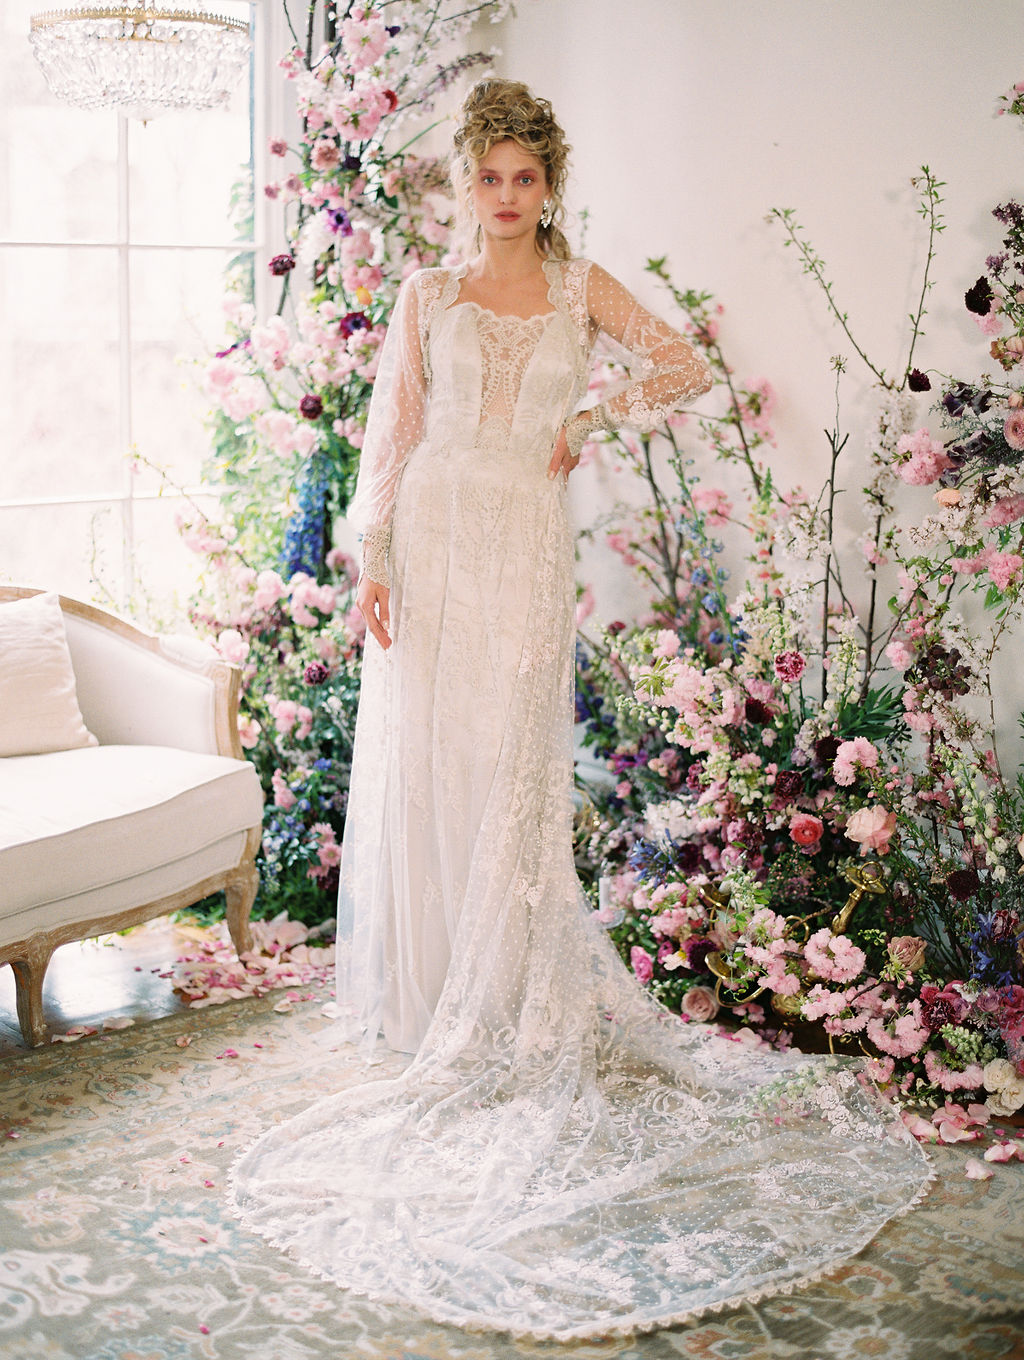 Claire Pettibone Timeless Wedding Dresses New York Bridal Fashion Week with East Made Co and Sophie Kaye Photography Spring 2019(60of353).jpg